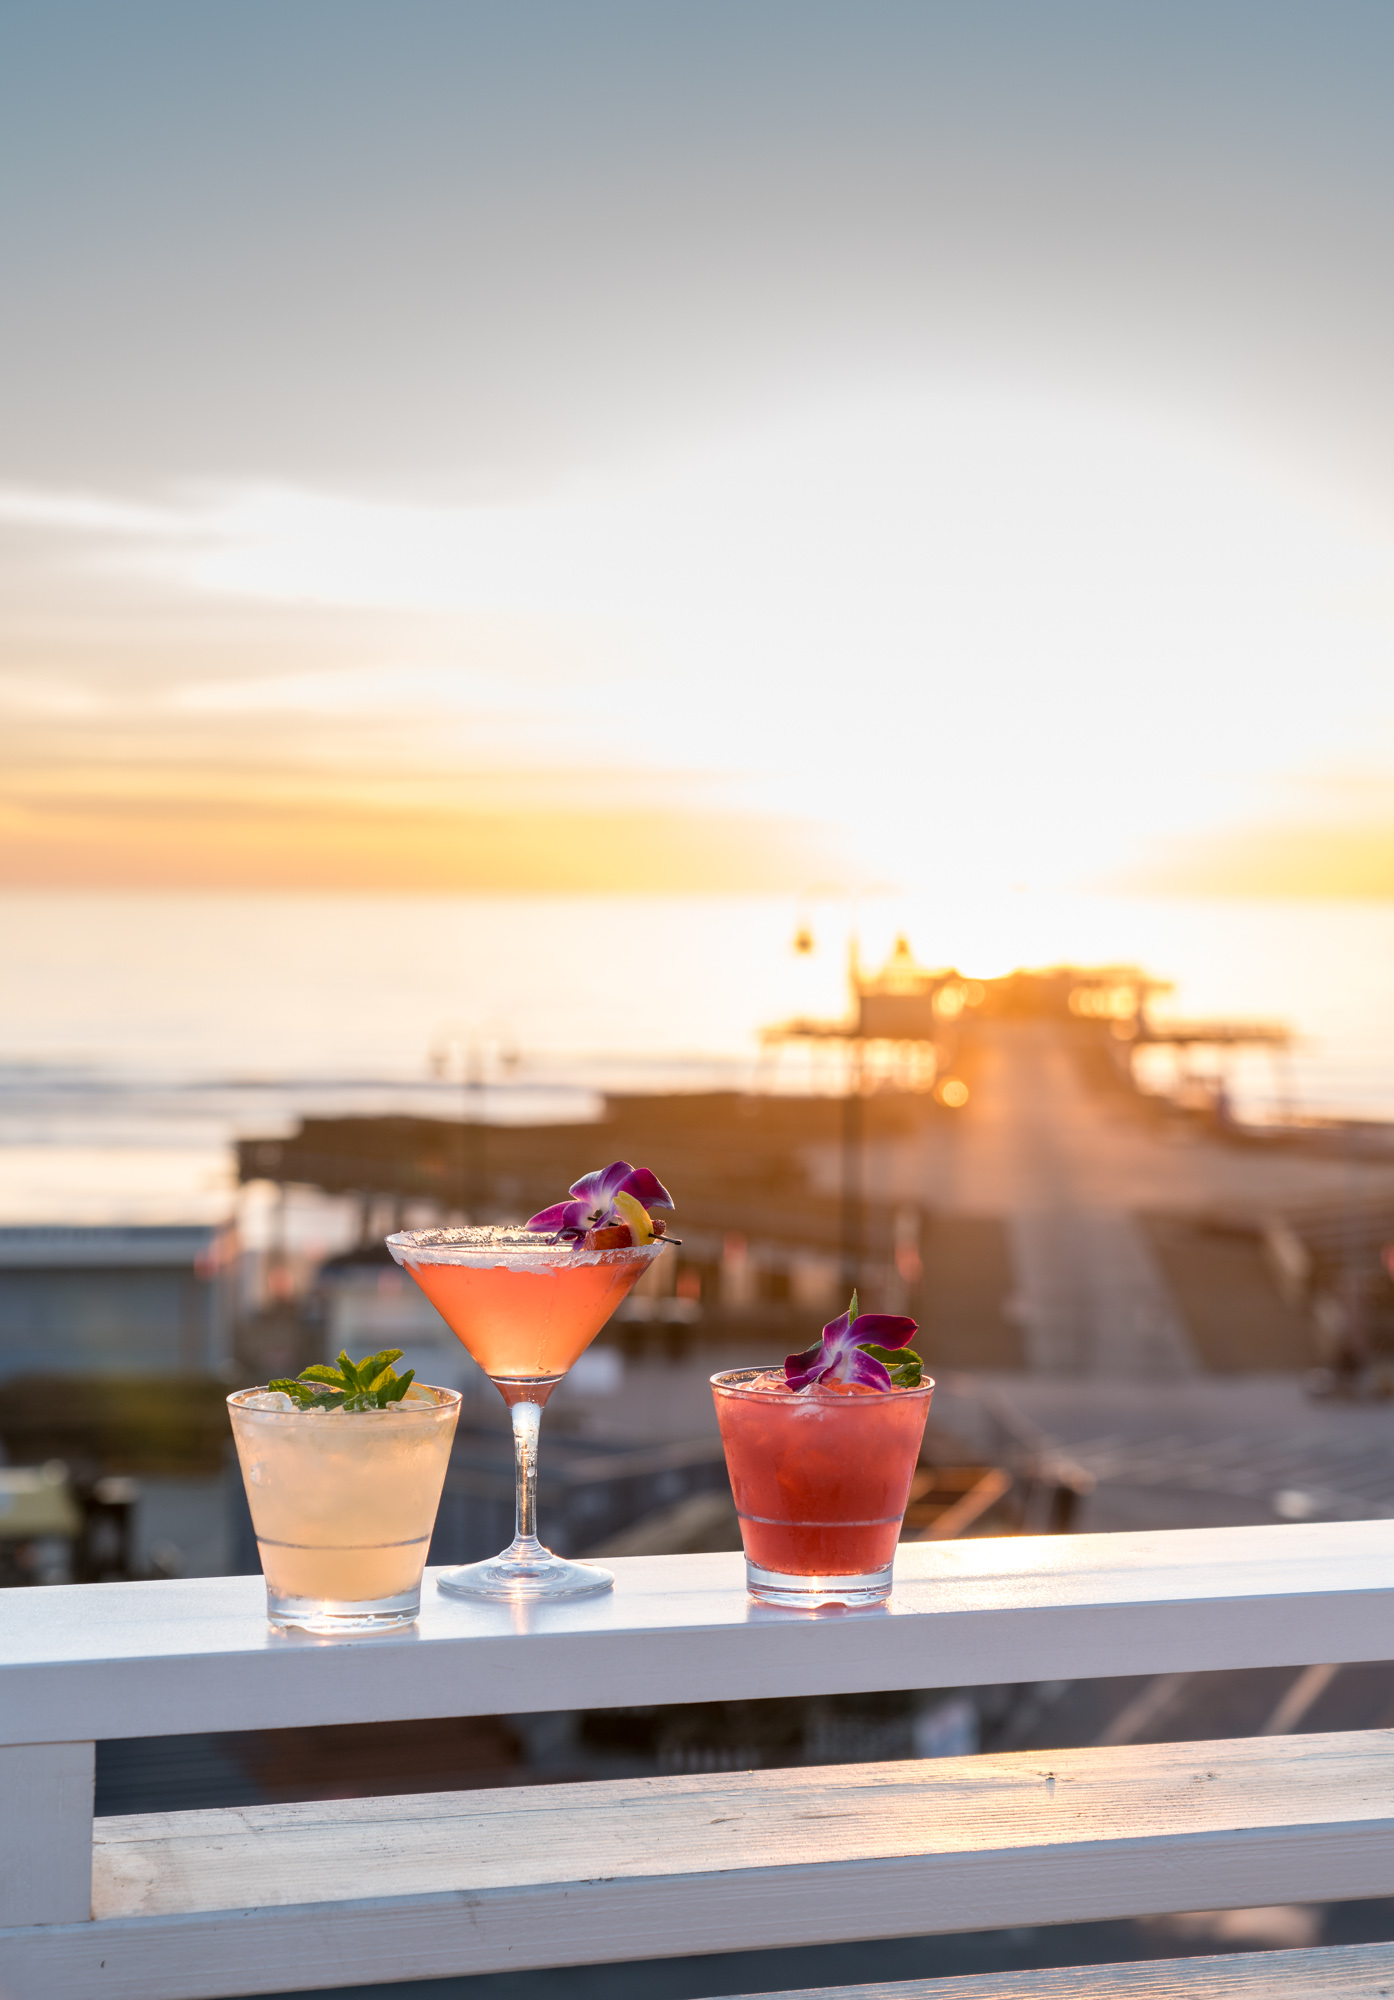 Cocktails at The Rooftop at Inn at the Pier, Pismo Beach, CA